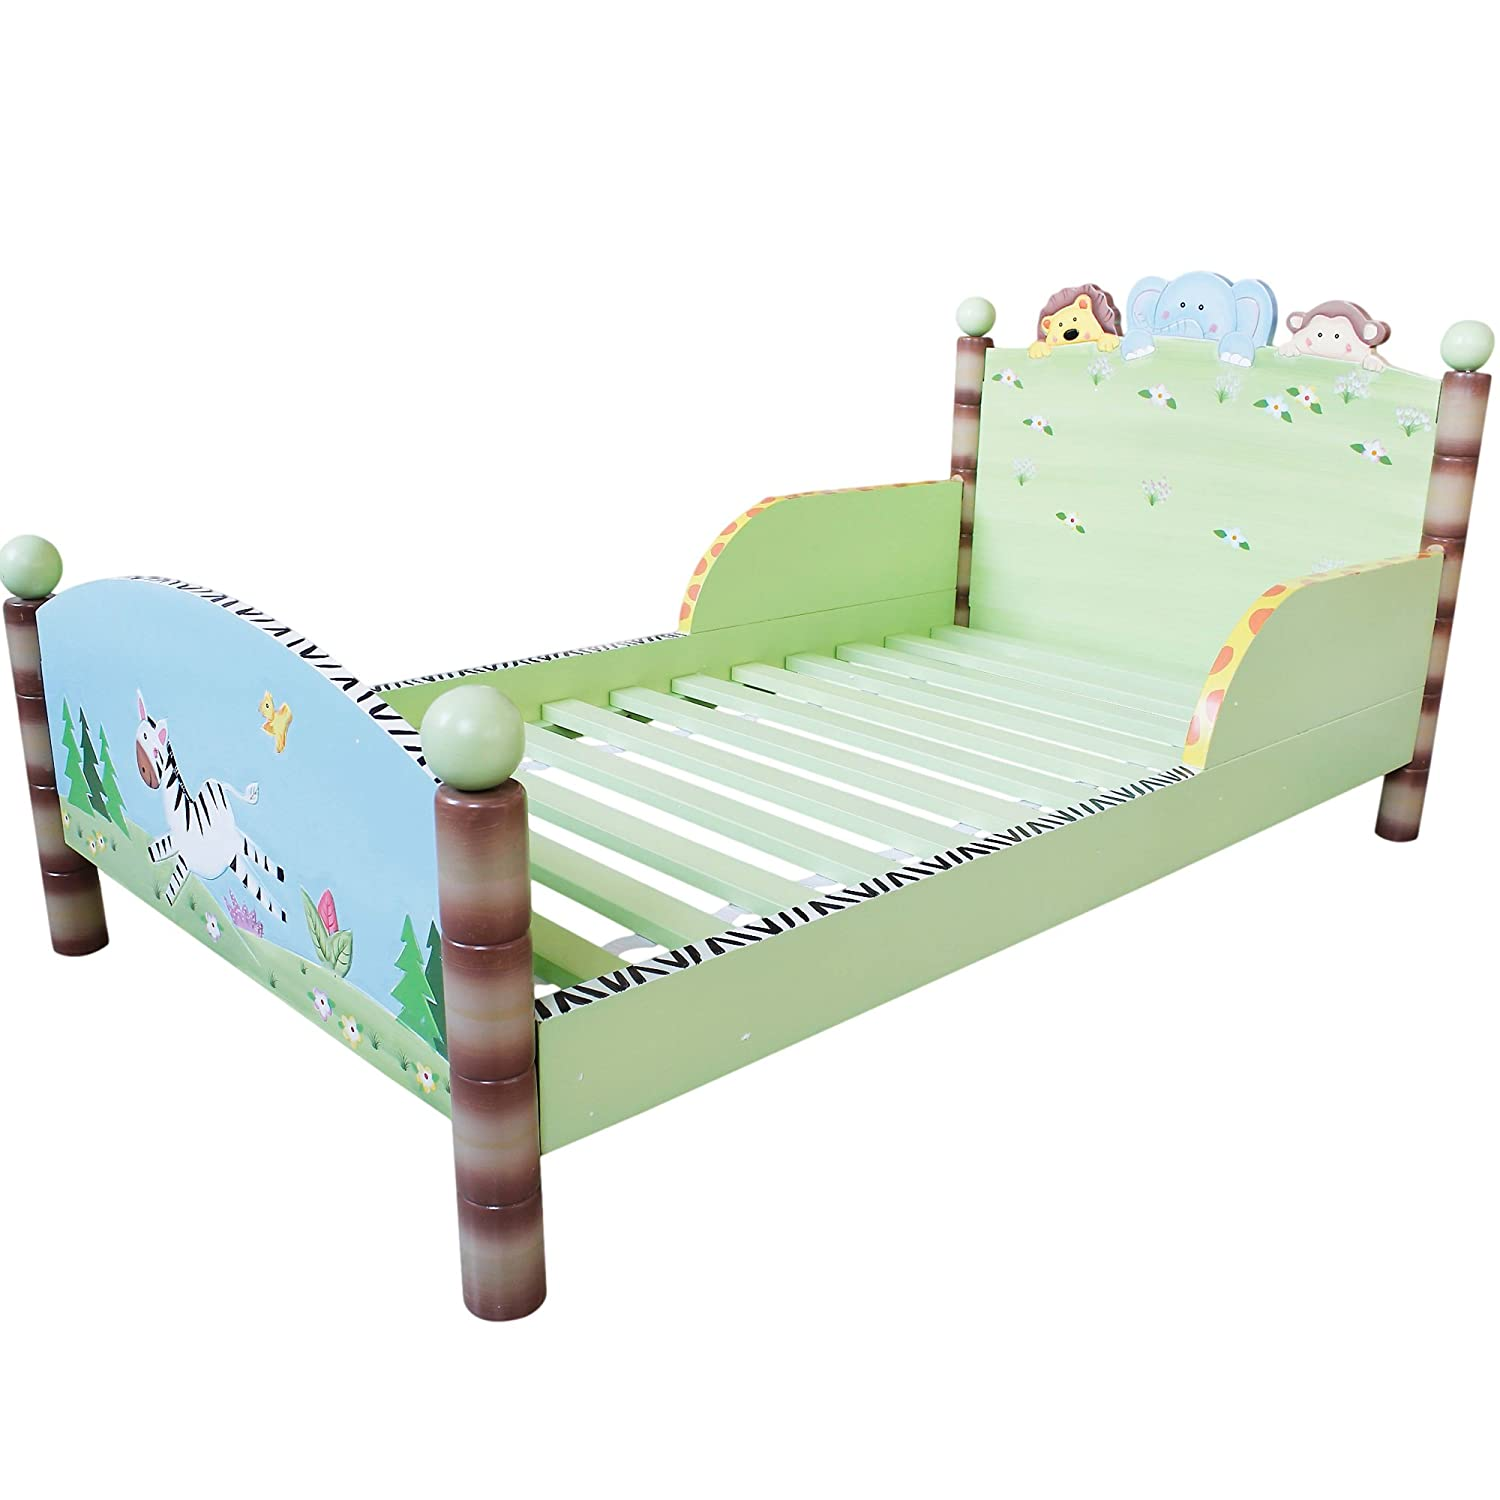 a toddler bed this beds love enough too idea diy looks to for as pin simple make